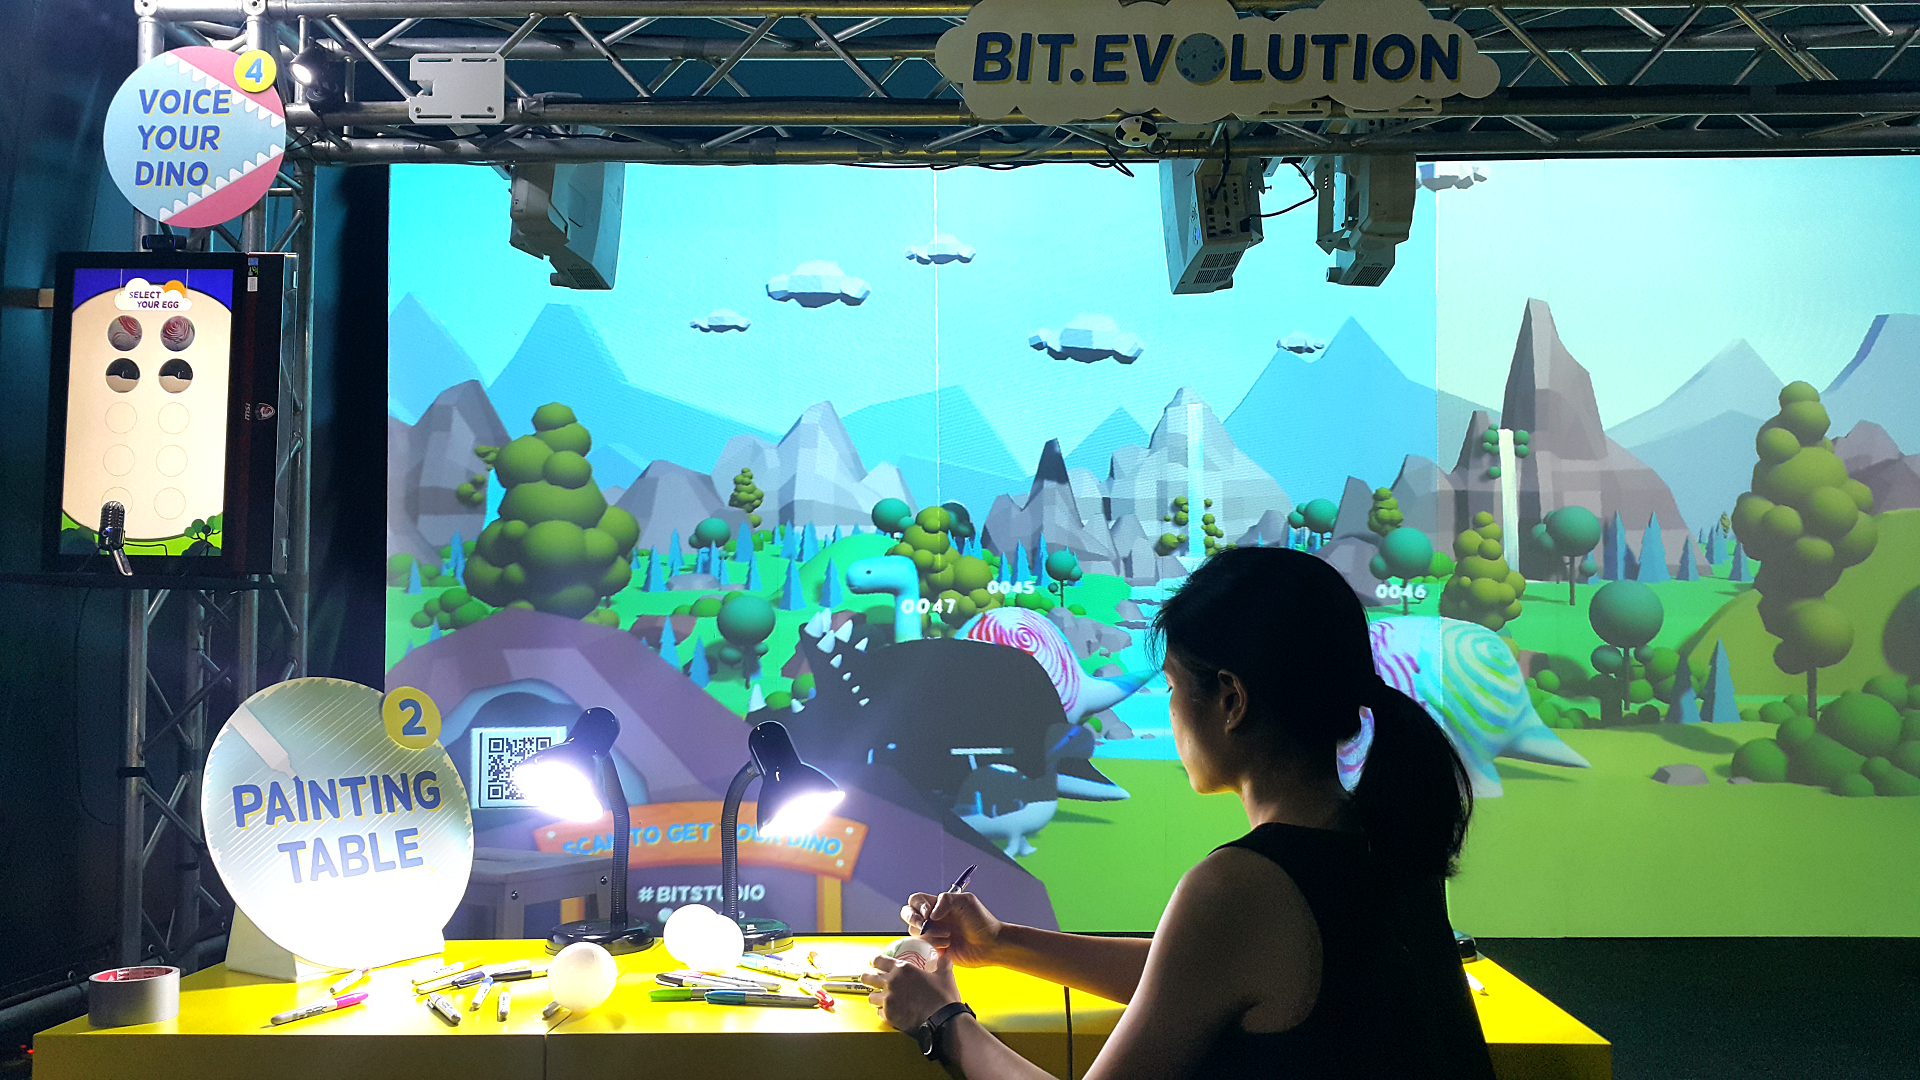 bit.evolution at maker faire bangkok 2018